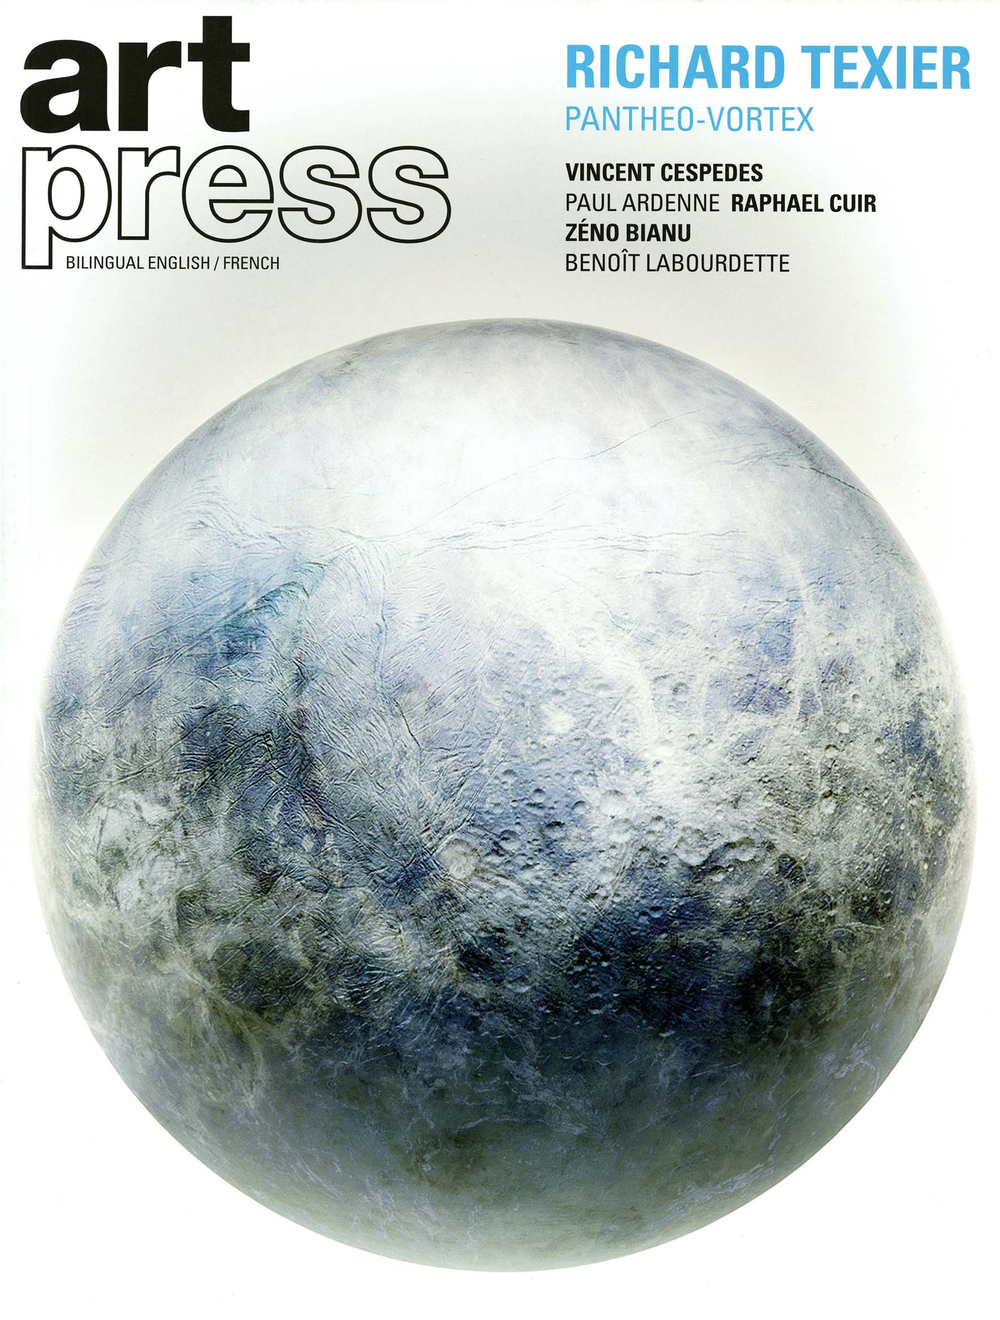 Art Press Cover Richard Texier - Pantheo Vortex and Elastogenese